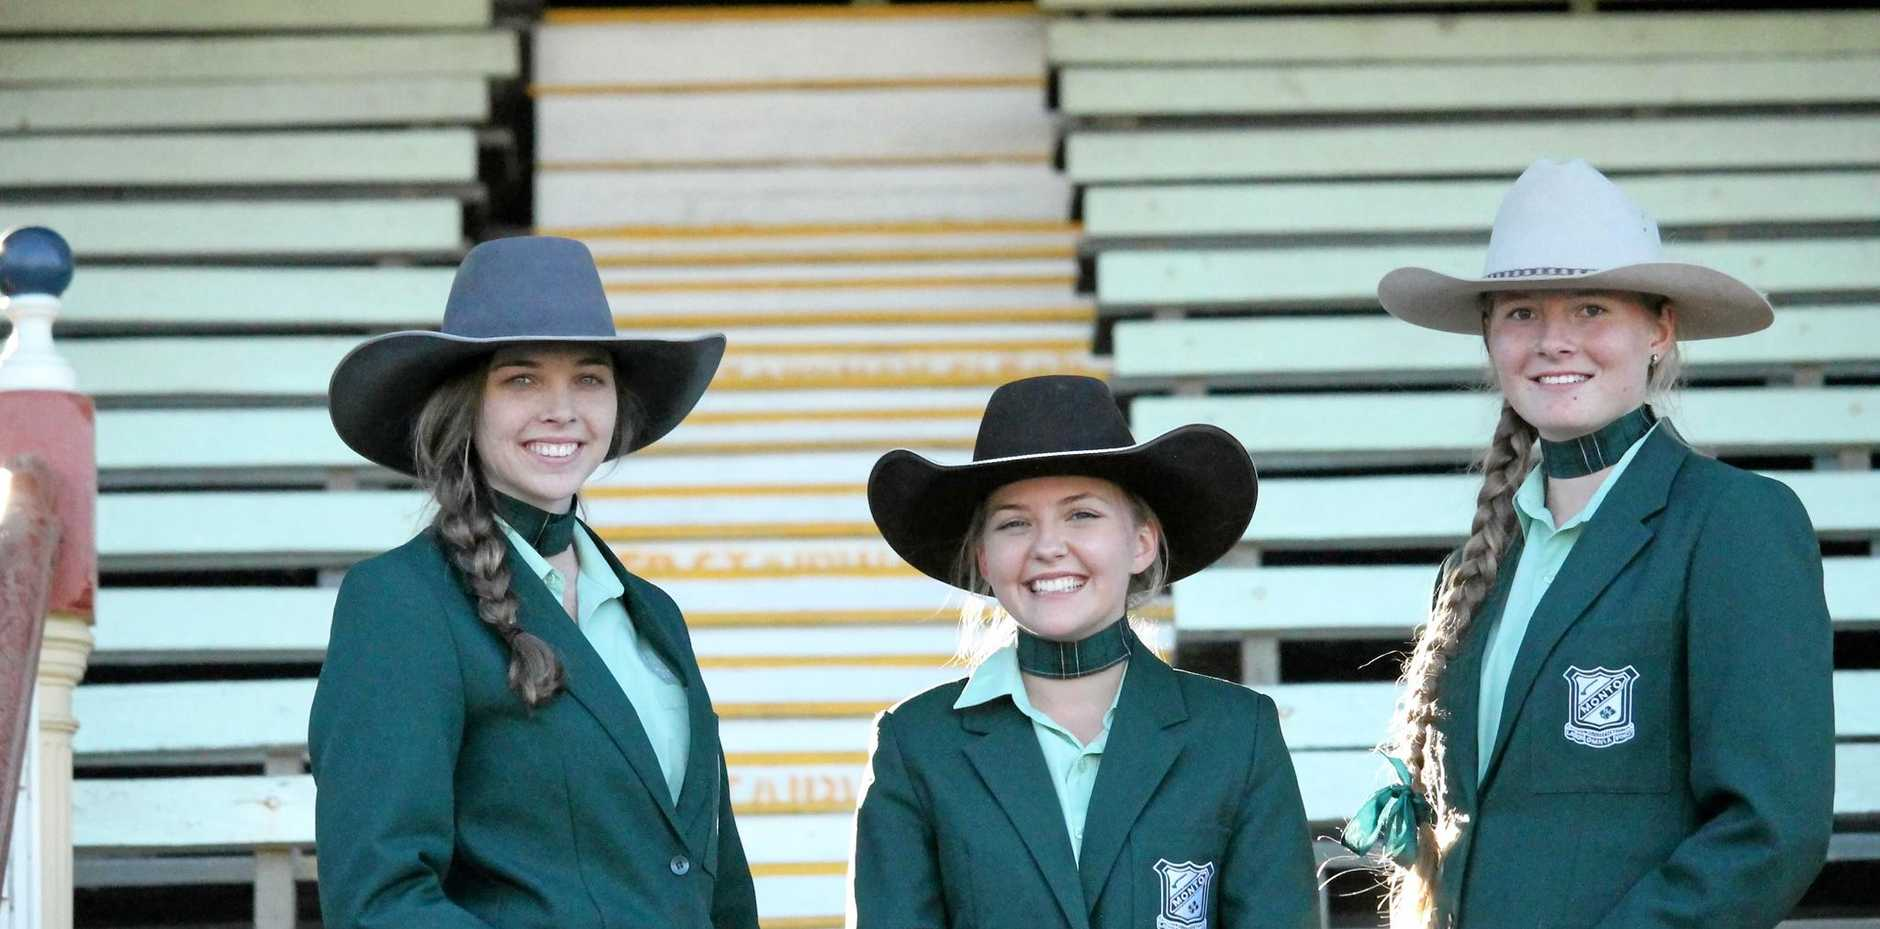 OUR WINNERS: Nanci Wilson, Madison Low and Megan Birch, three of among many Montonians who excelled at the Ekka cattle events.